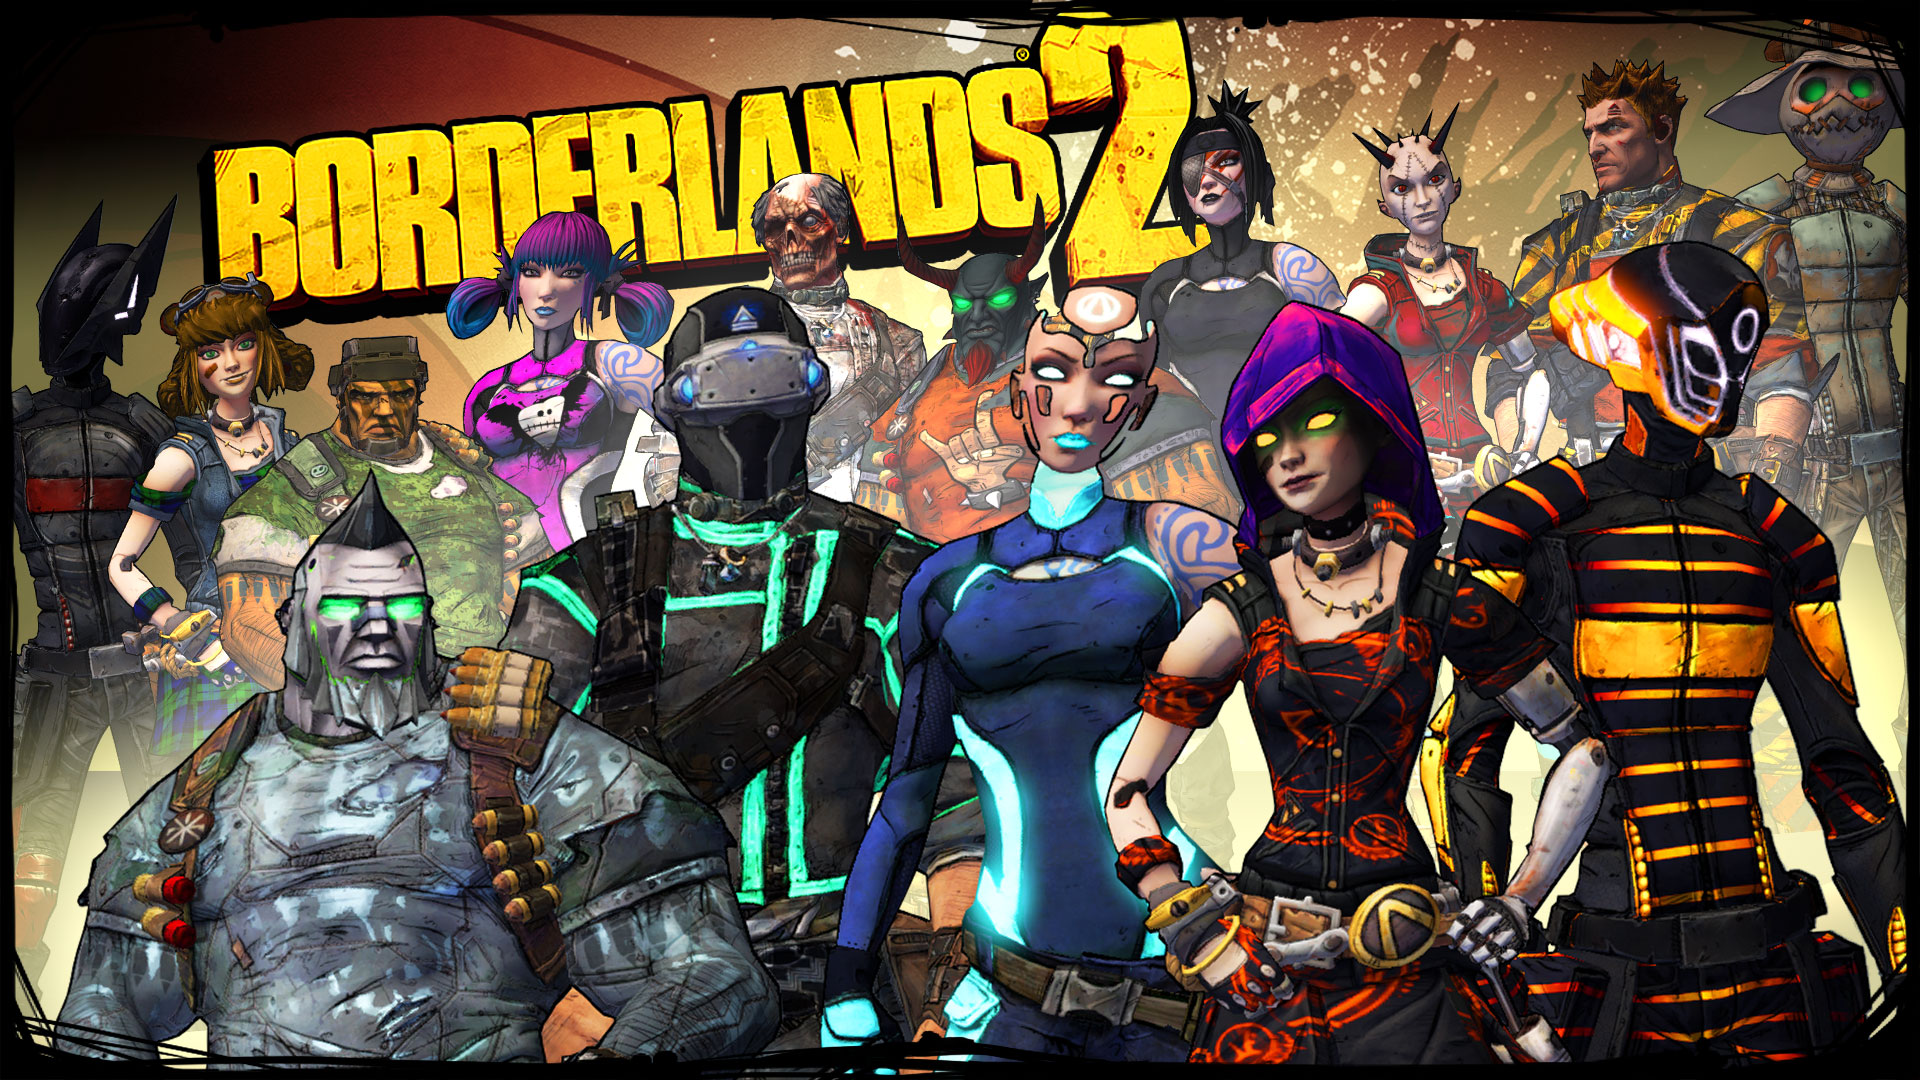 Gearbox Announces Borderlands 2 DLC, New Vault Hunter at PAX East Panel